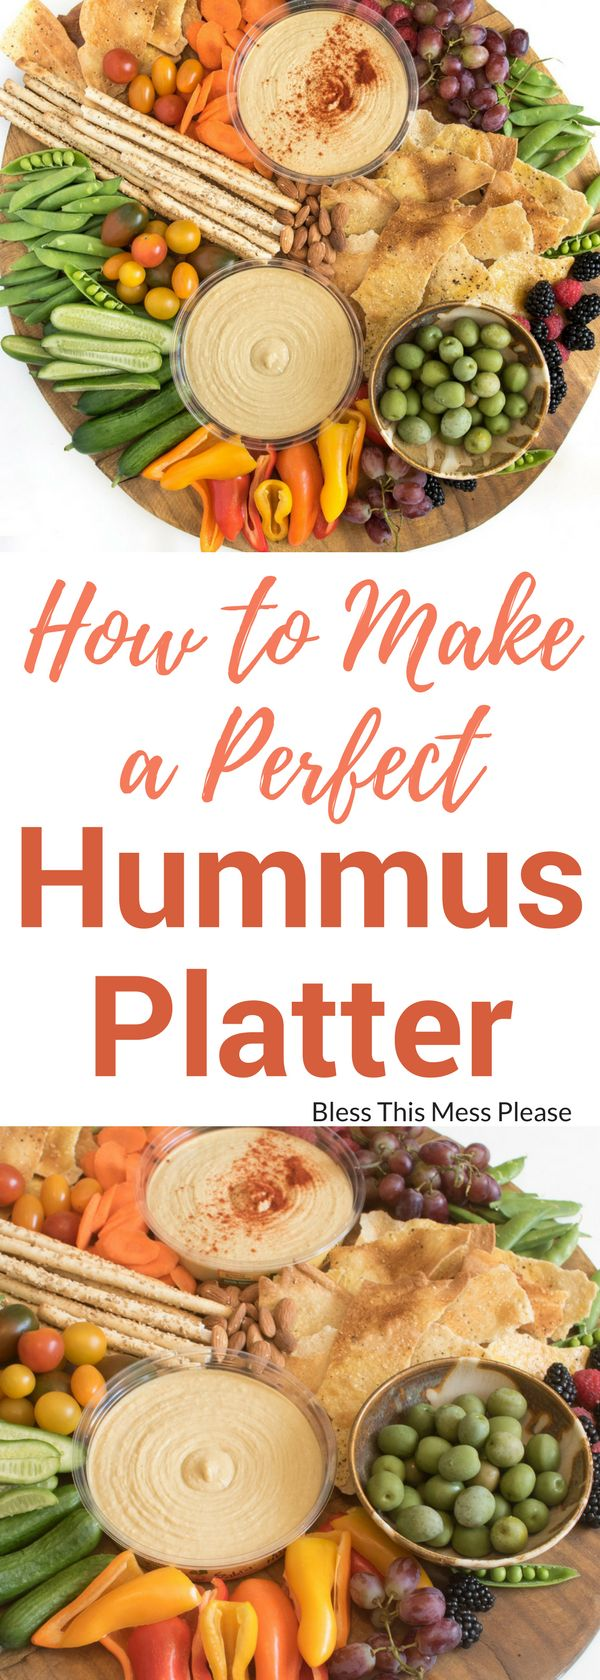 How to Make a Perfect Hummus Platter AD